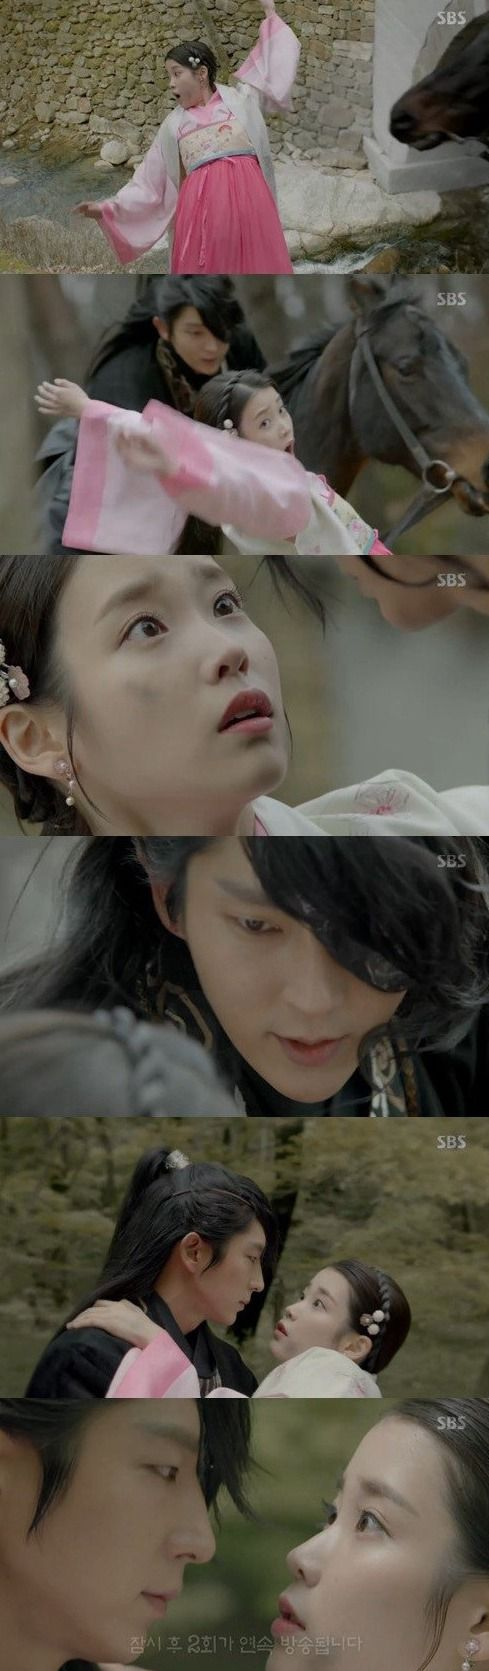 [Spoiler] Added episodes 2 and 3 captures for the #kdrama 'Scarlet Heart: Ryeo'